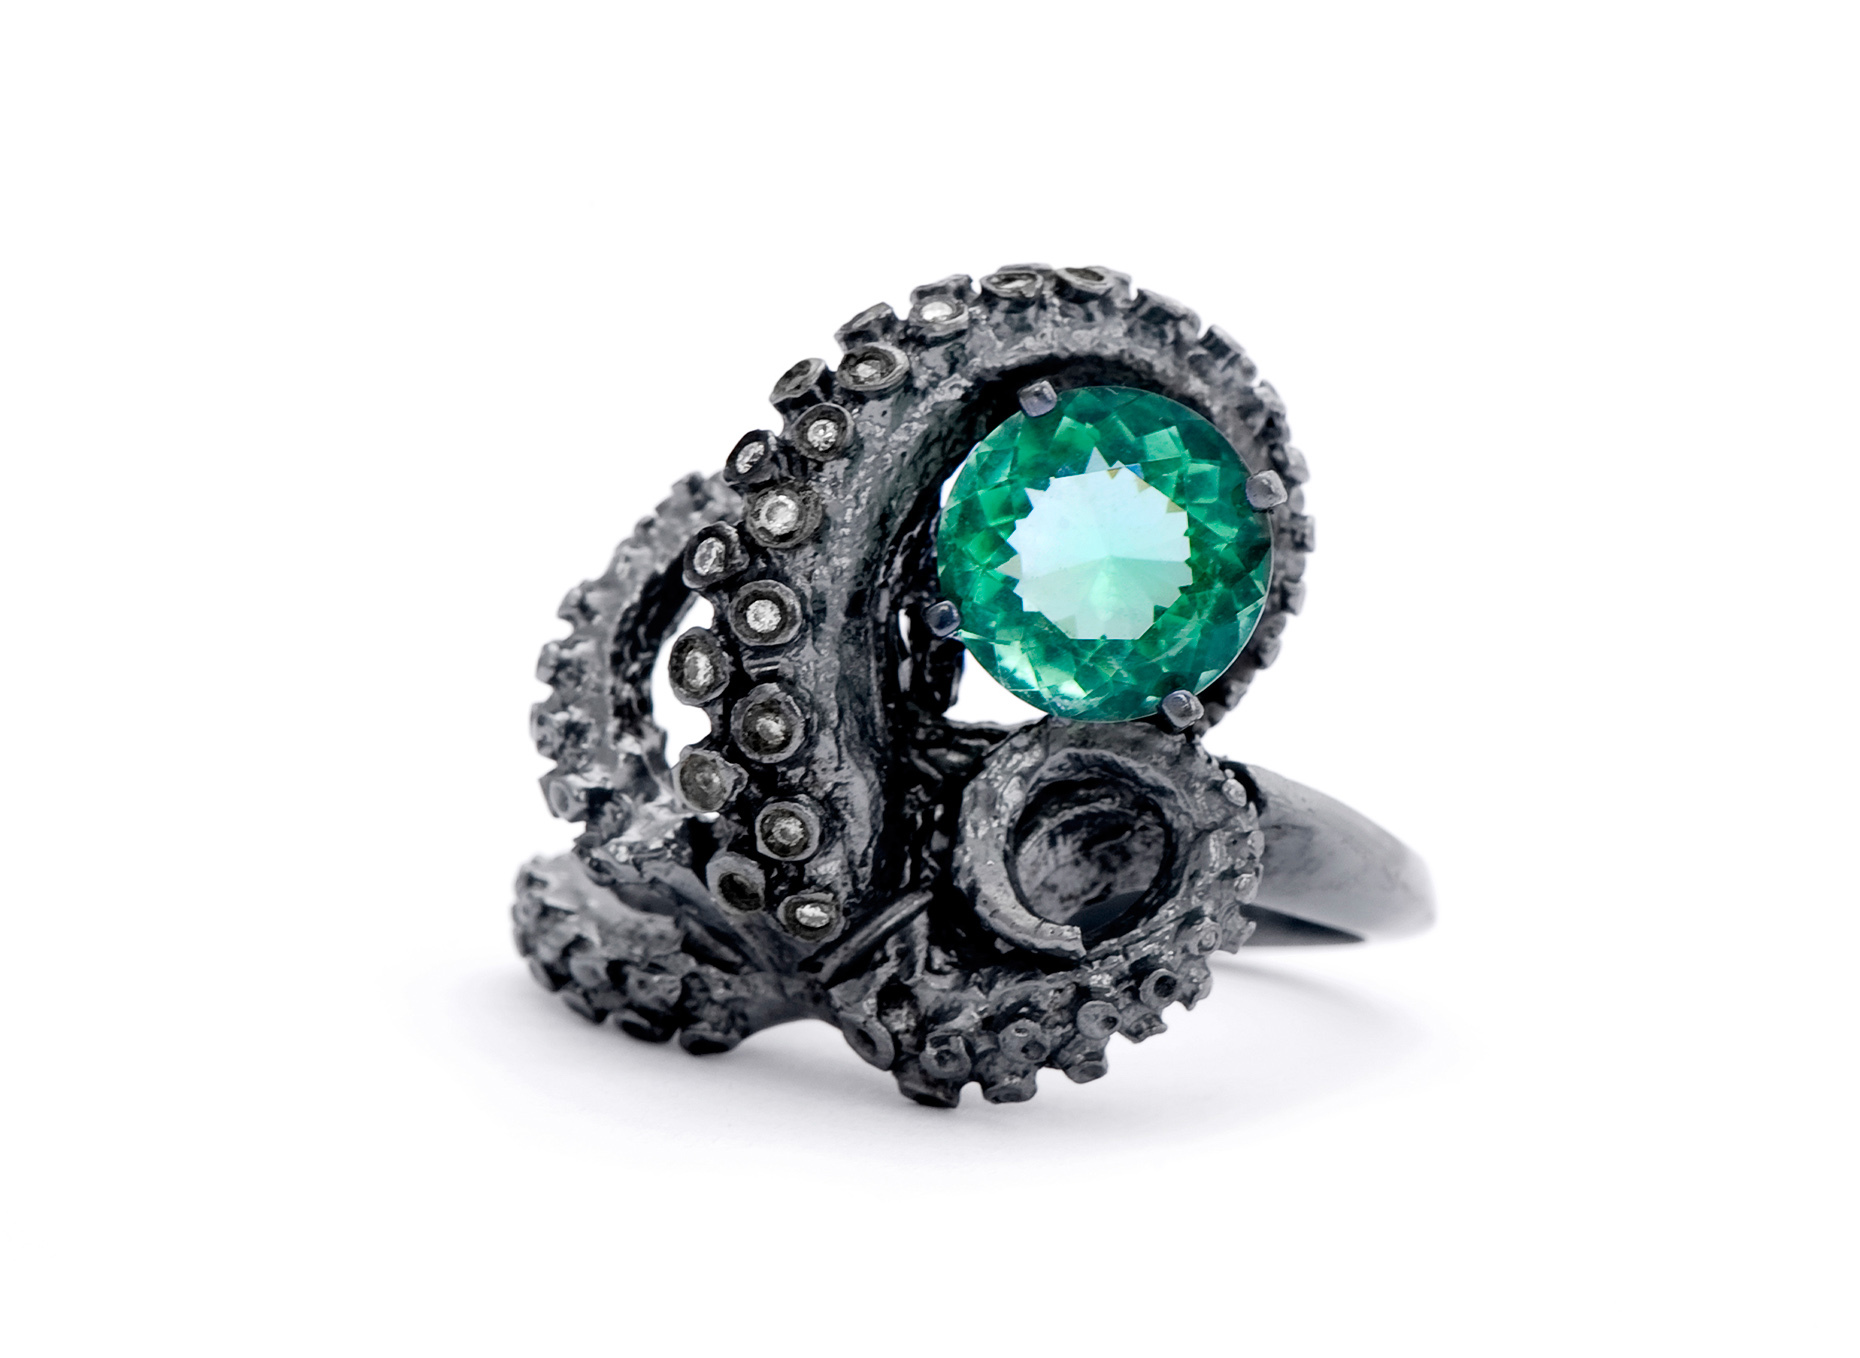 Tentacle-Ring-with-Green-Jewel-by-Peggy-Skemp_RHanelPhotography